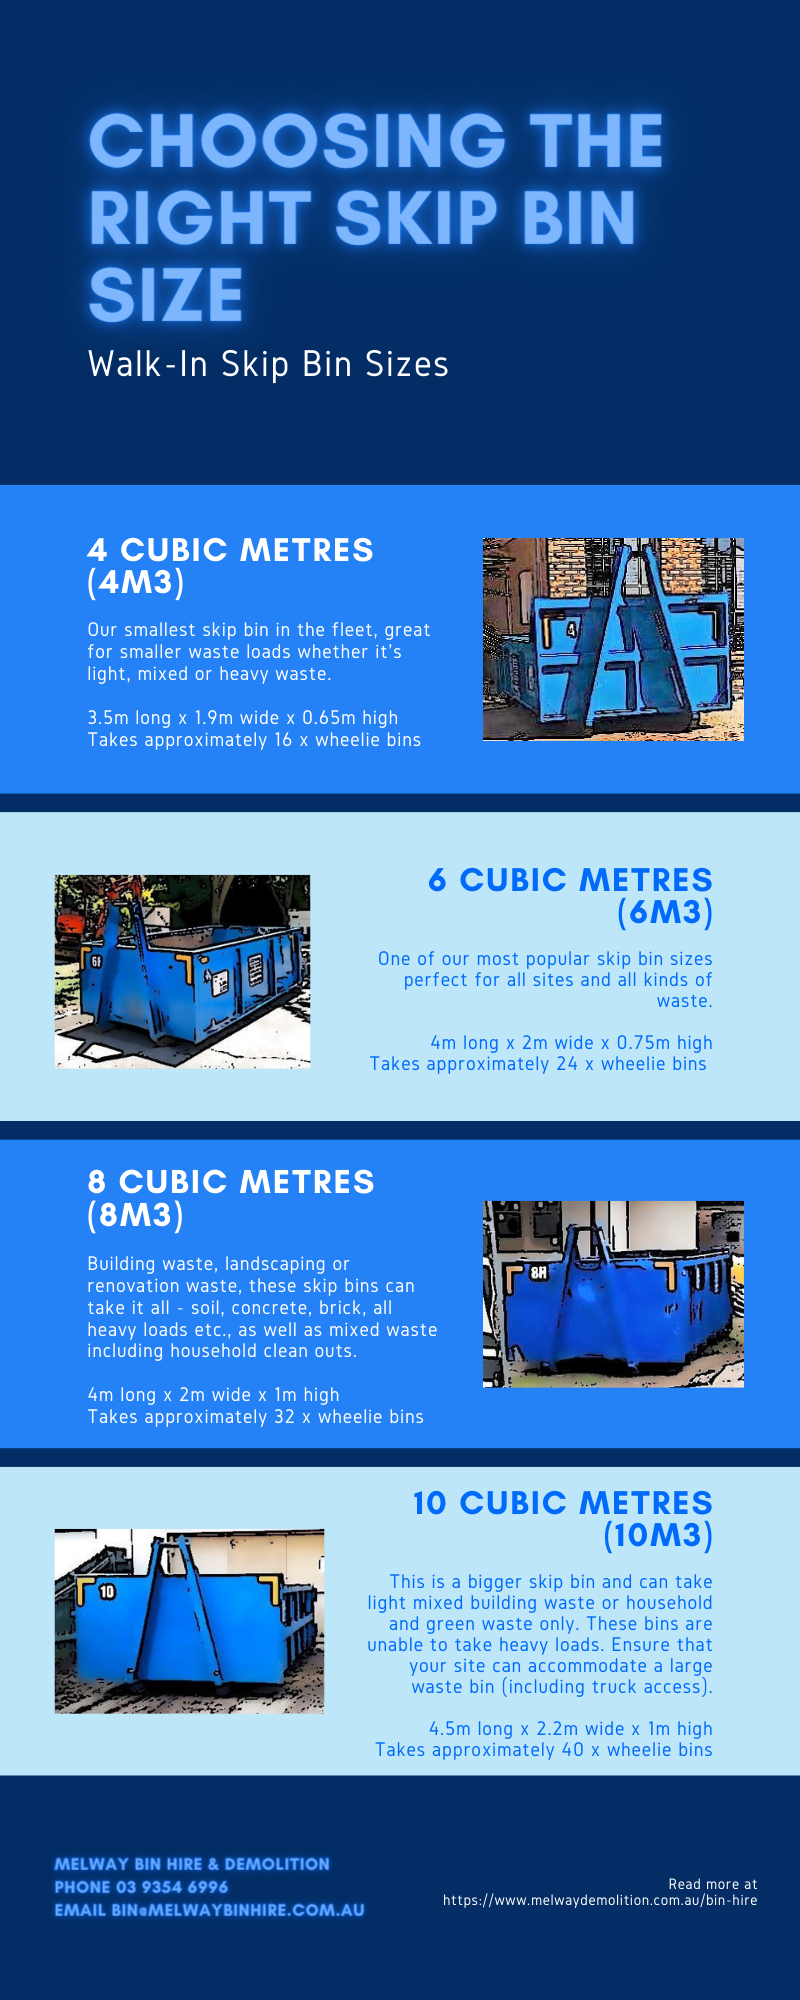 Just an infographic highlighting the different sized skip bins Melway Bin Hire offer and how much waste each skip can take.